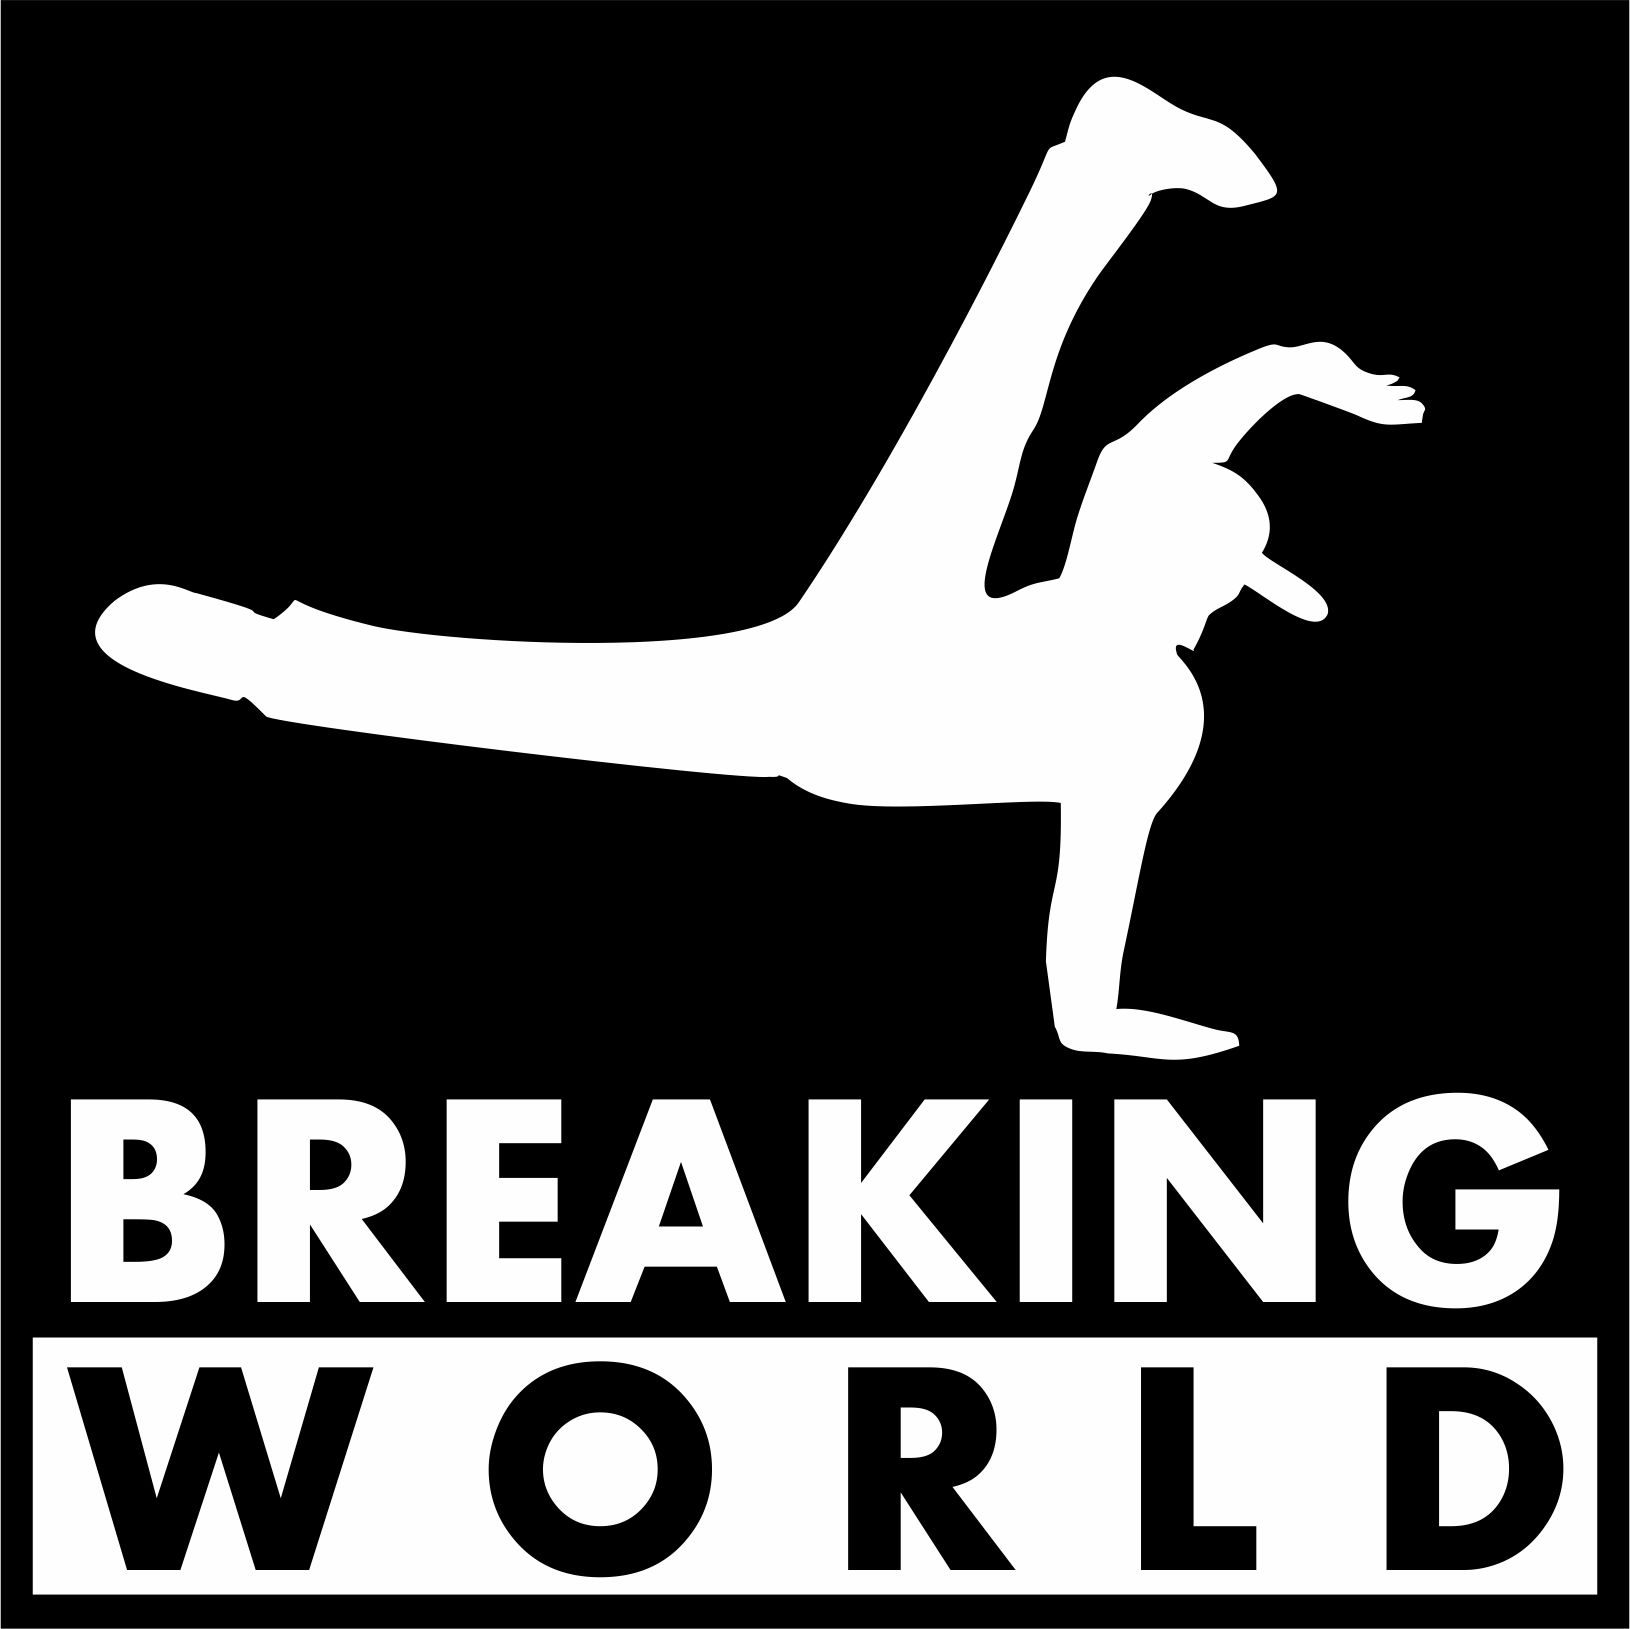 Breaking World